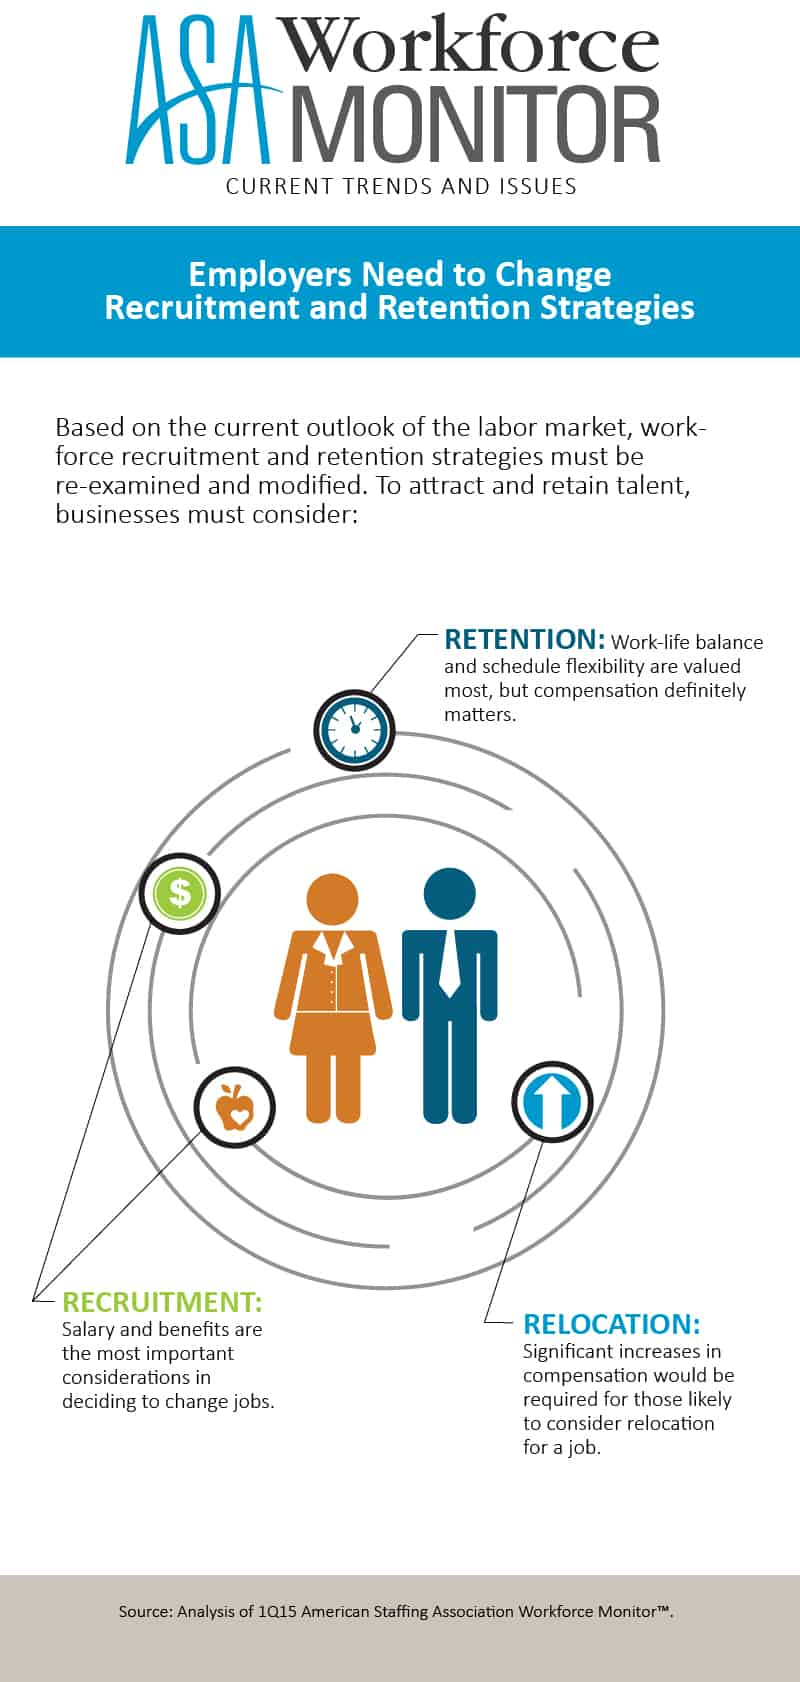 Hire better with recruitment and retention strategies